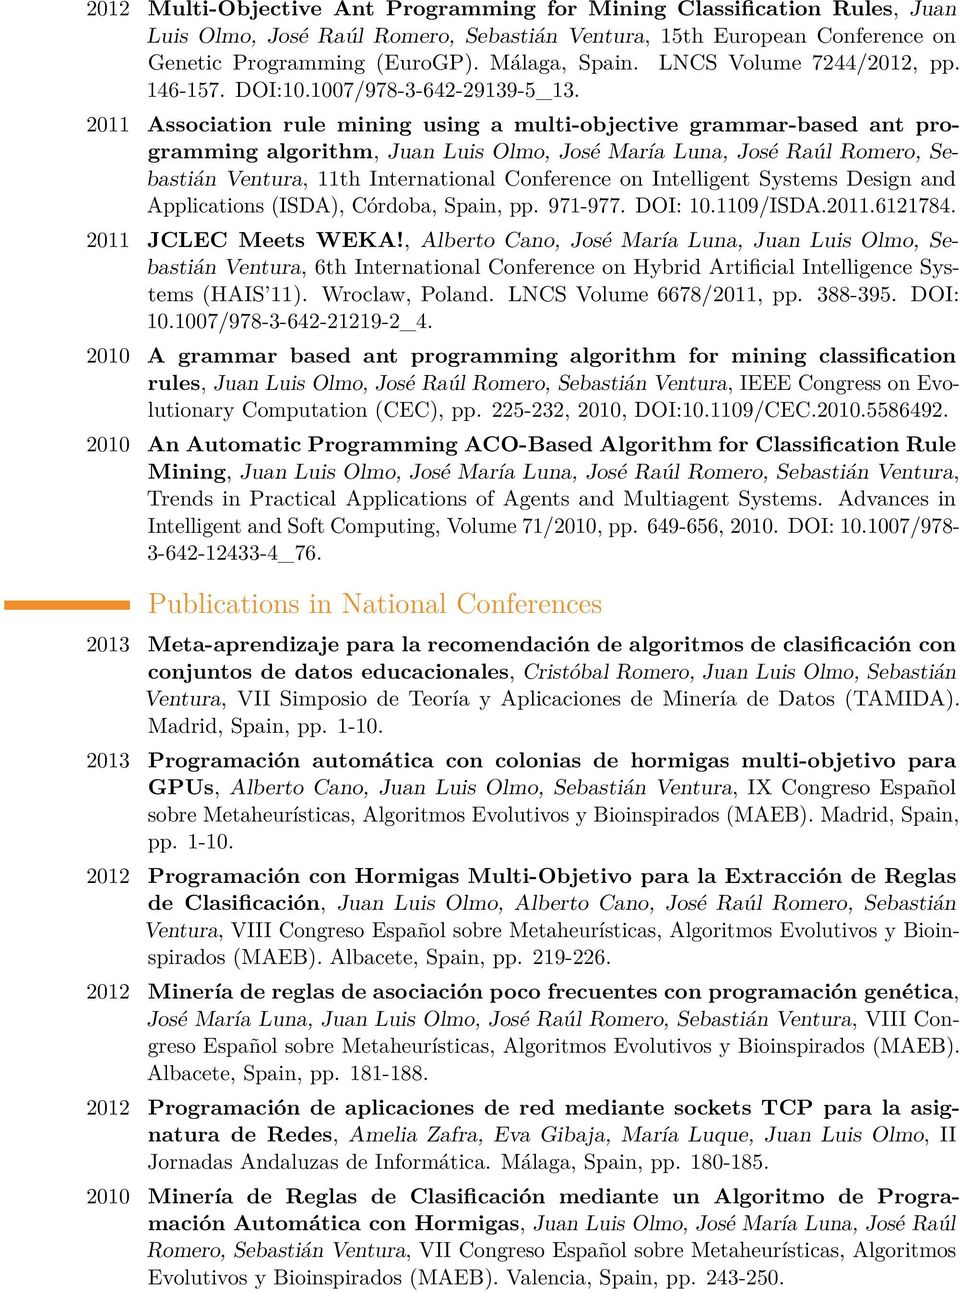 2011 Association rule mining using a multi-objective grammar-based ant programming algorithm, Juan Luis Olmo, José María Luna, José Raúl Romero, Sebastián Ventura, 11th International Conference on